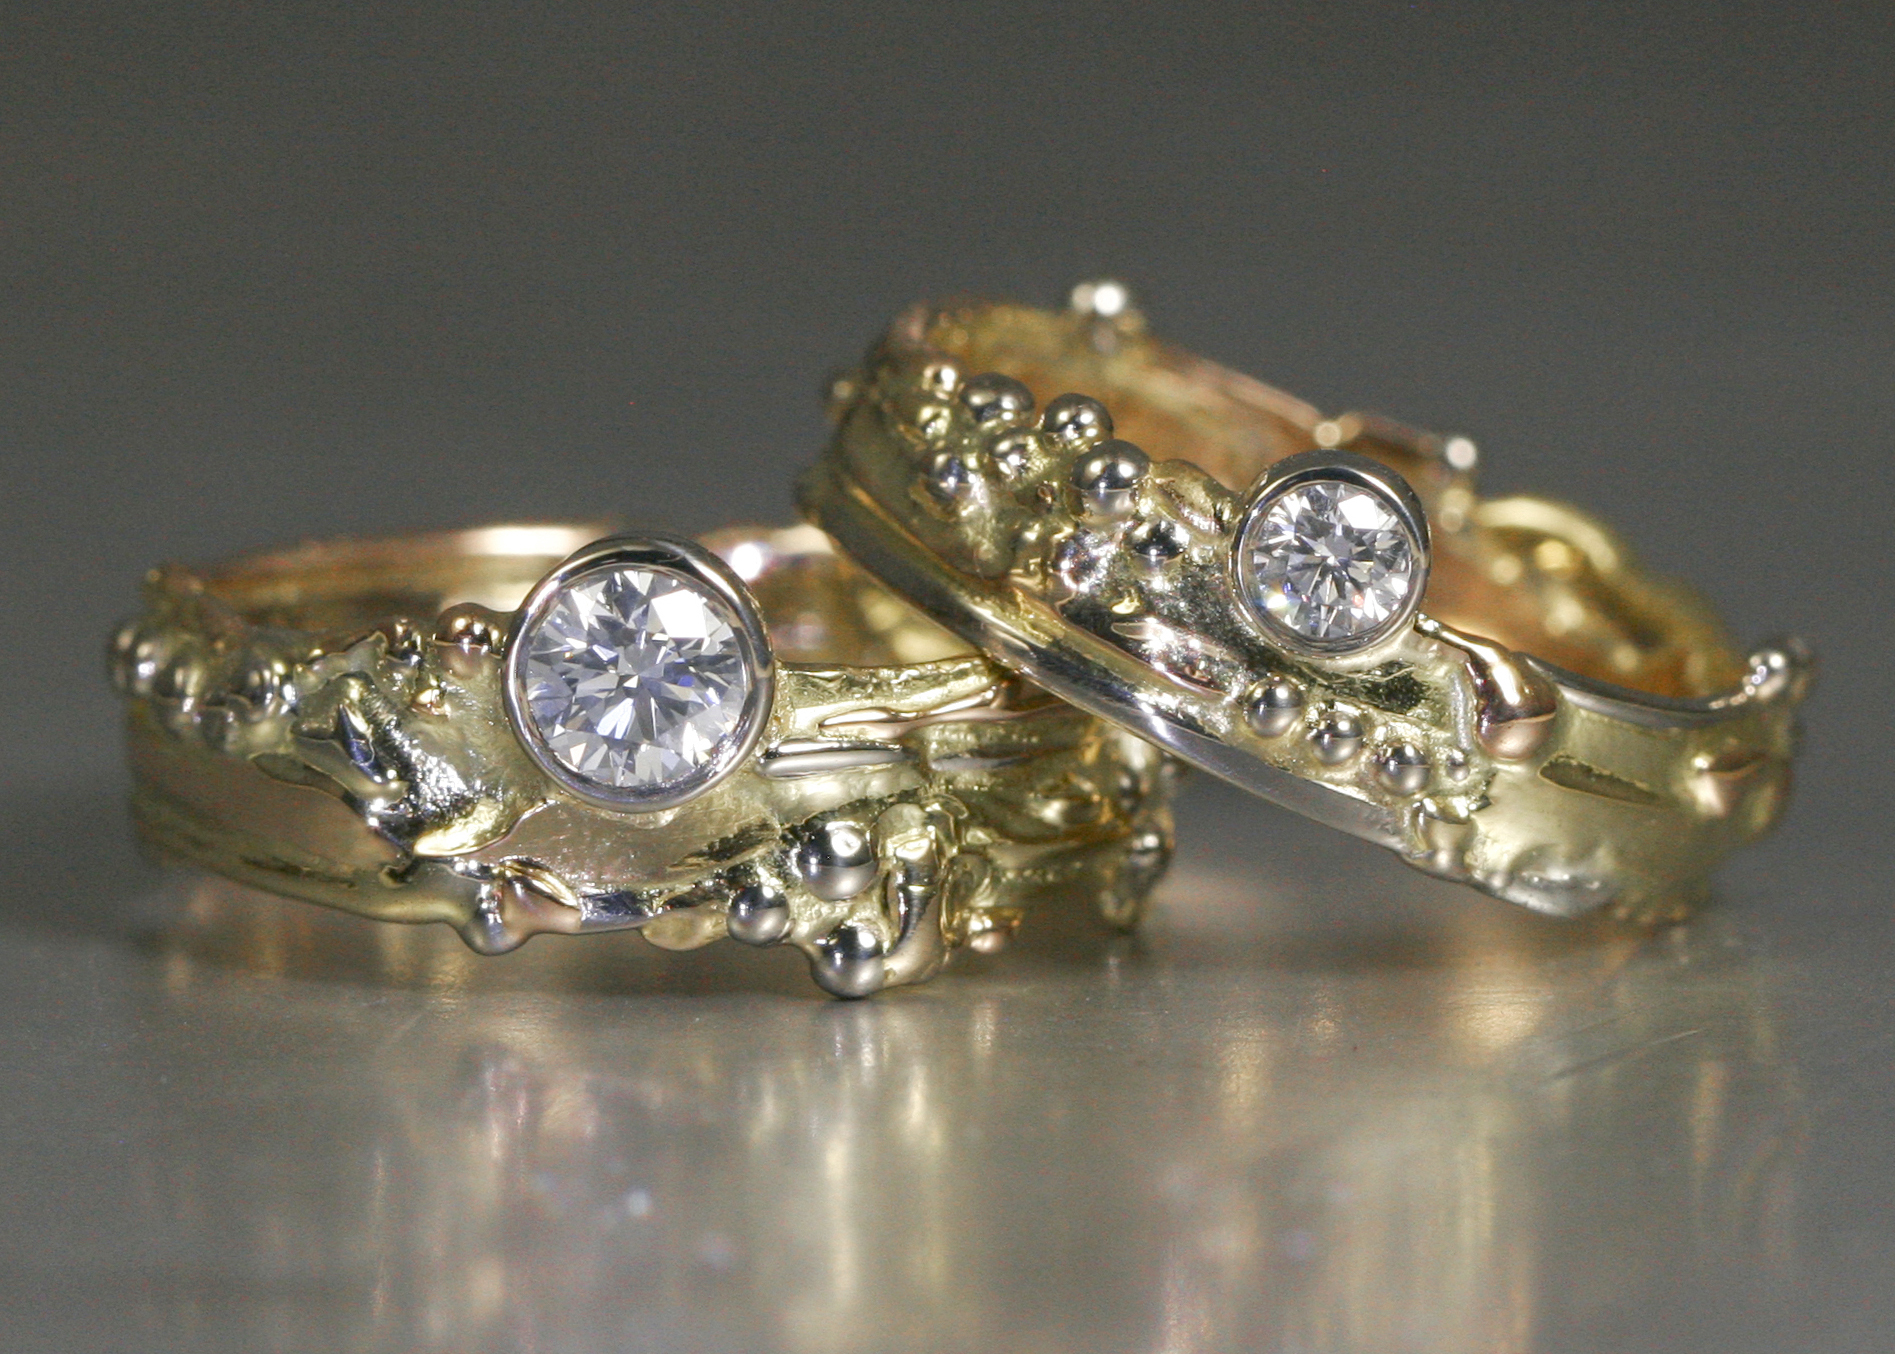 John Miller Design His and Hers Mixed Golds and Diamond Ring Set 2018 18Carat.jpg